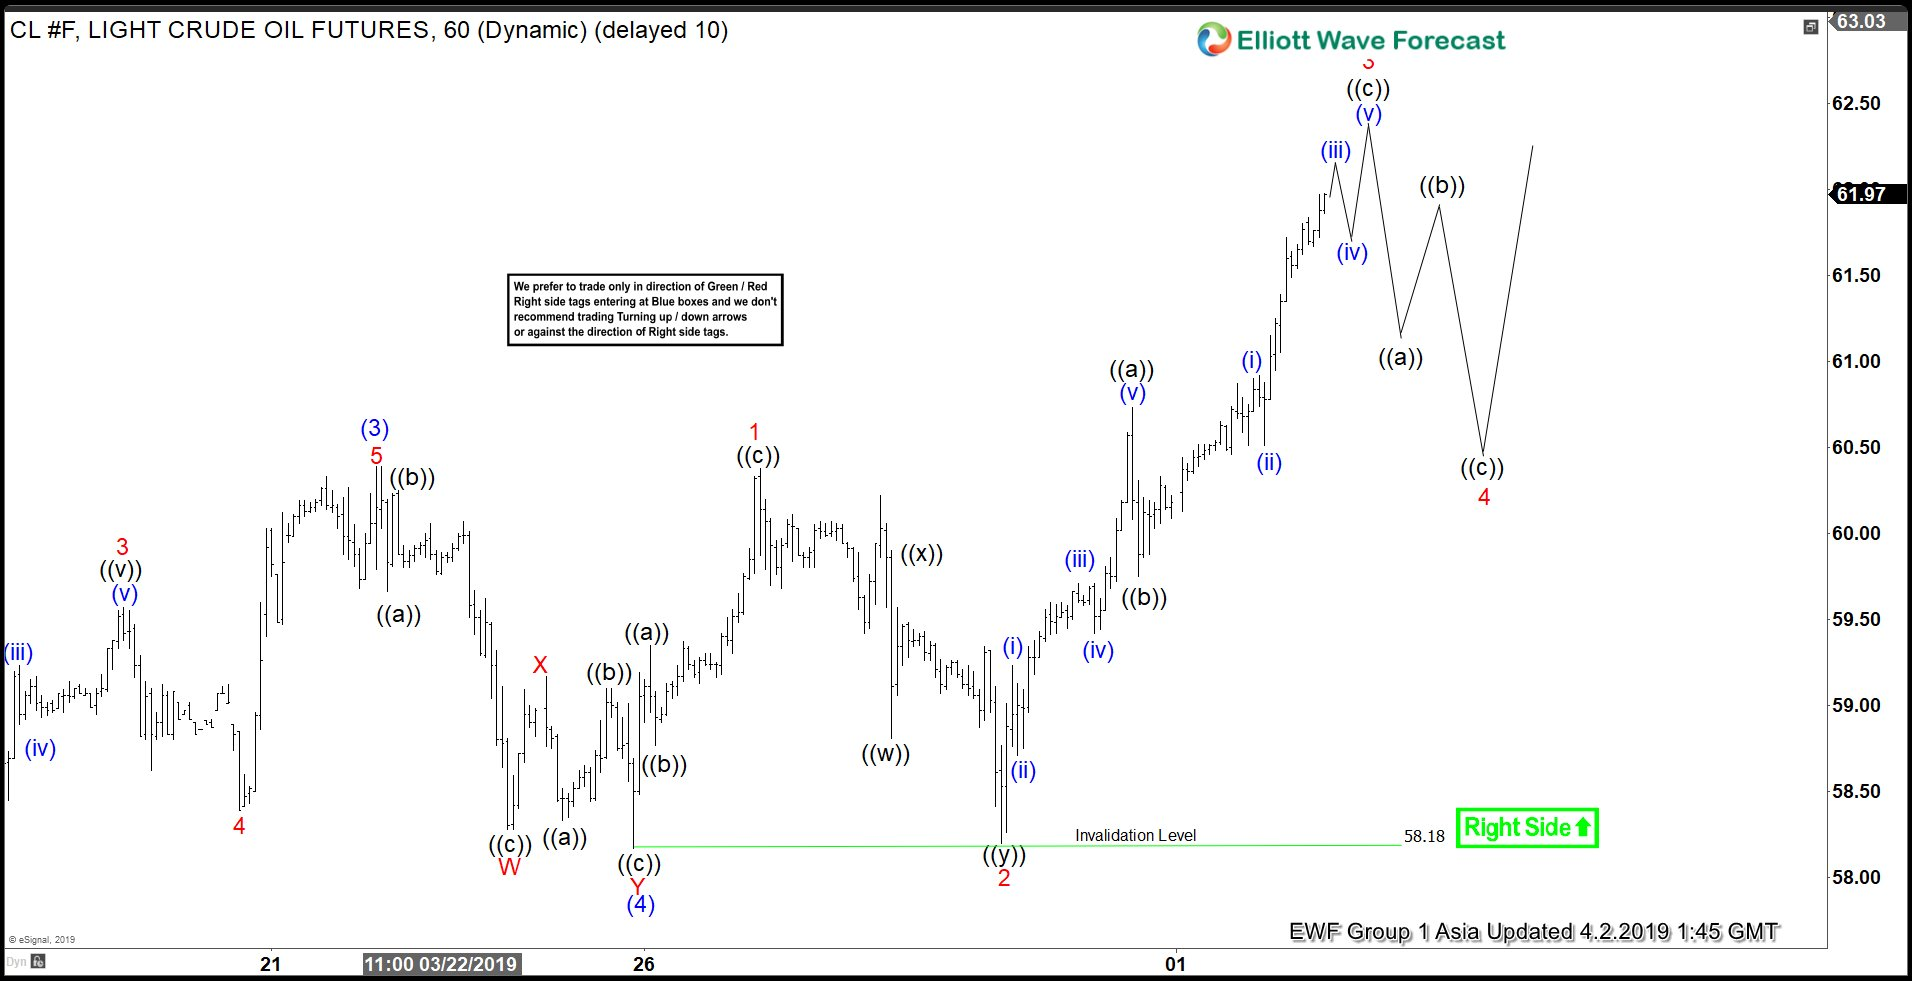 Elliott Wave View: Oil Close to Reach Minimum Upside Target